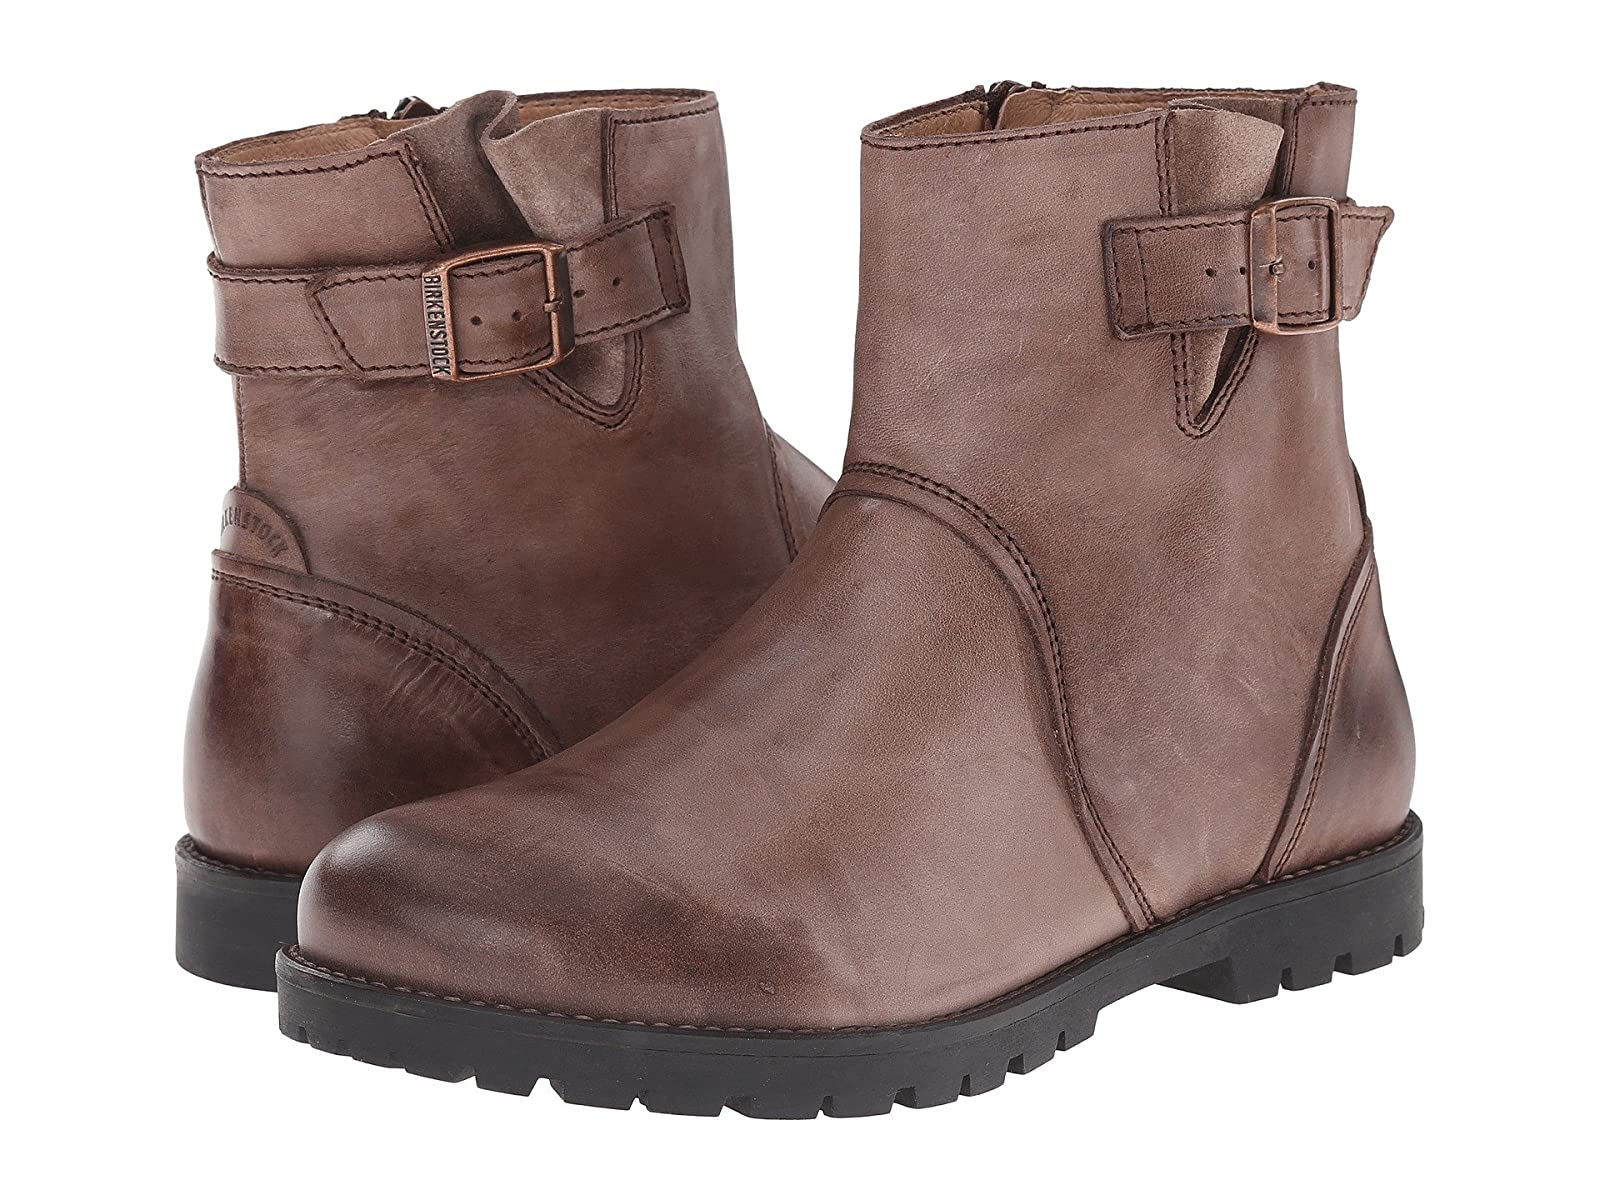 Birkenstock StoweCheap and distinctive eye-catching shoes